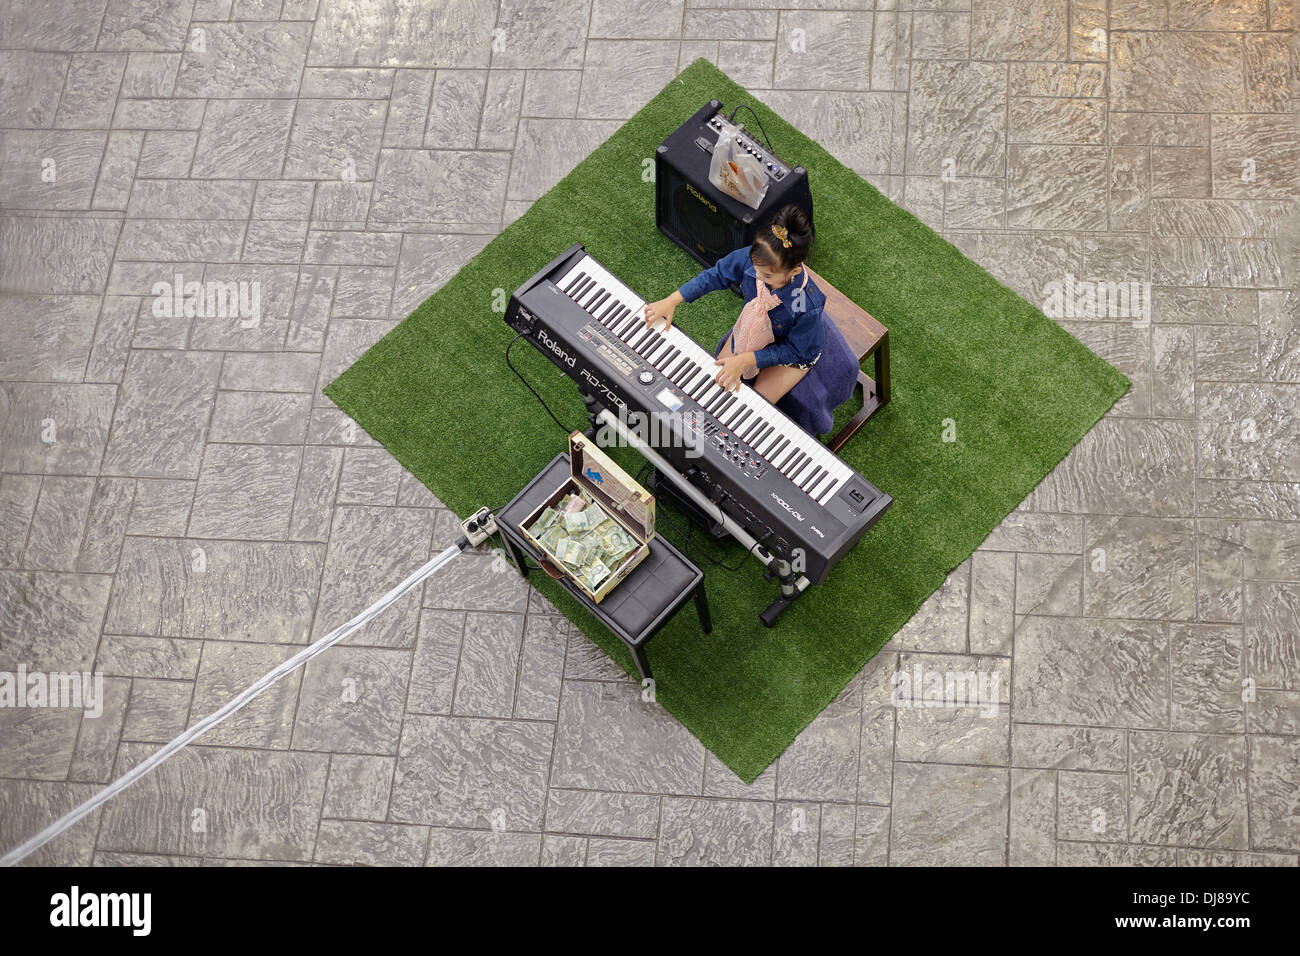 Overhead view of a young girl playing the electric piano in a shopping mall. - Stock Image